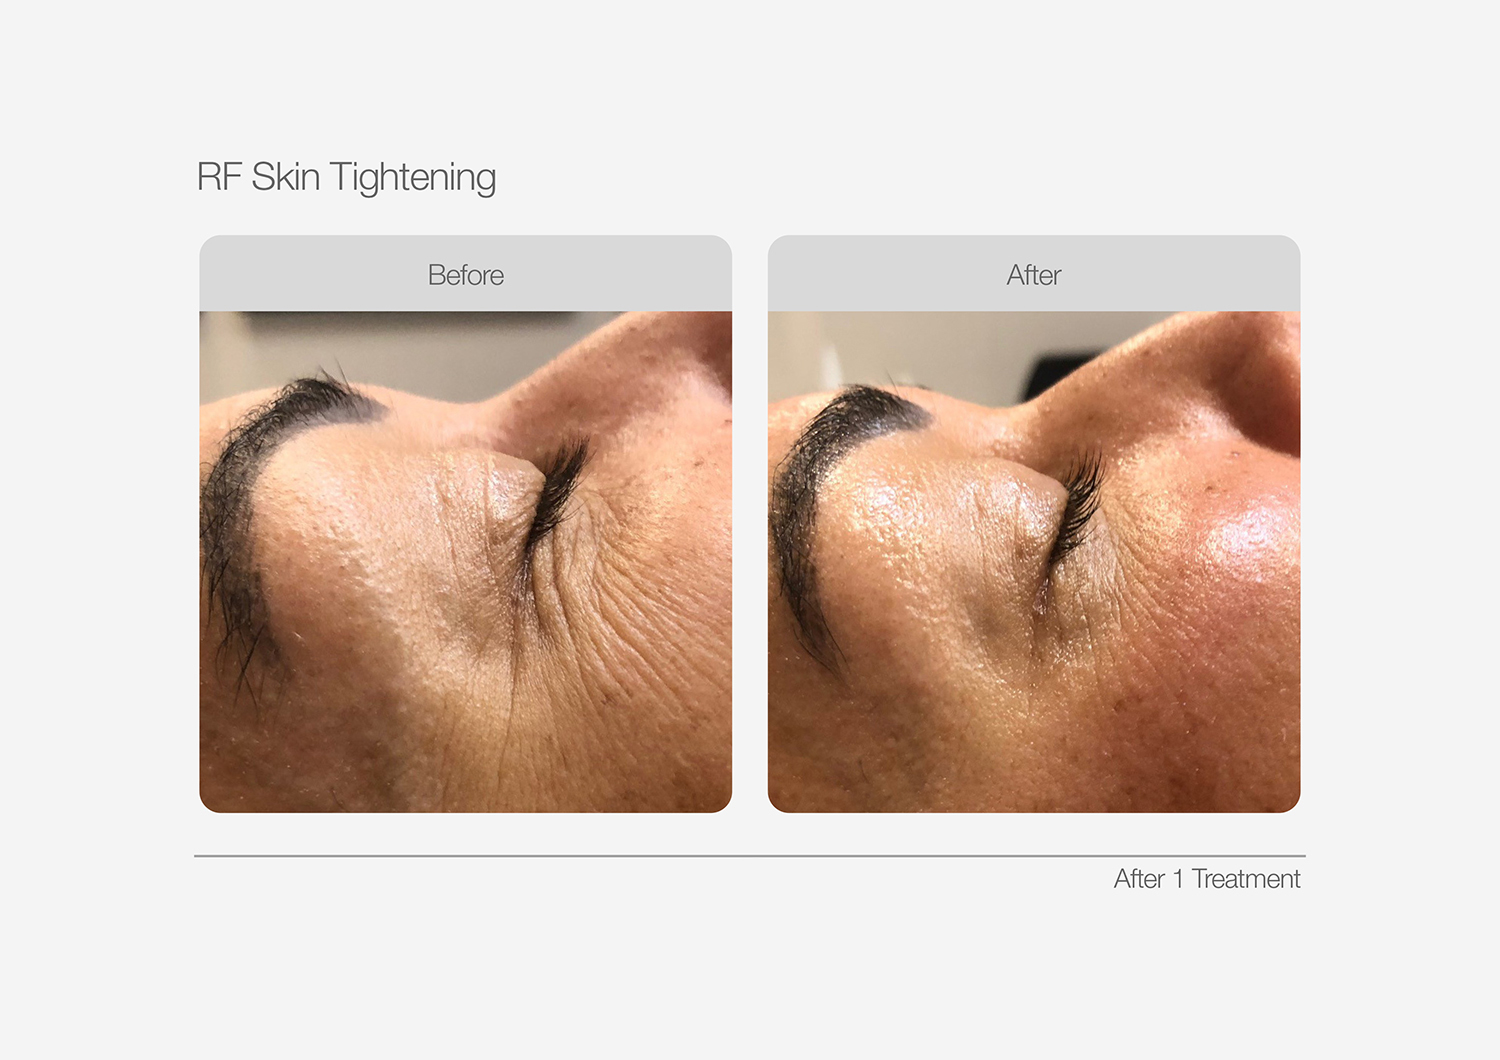 RF-Skin-Tightening-Before-After-03